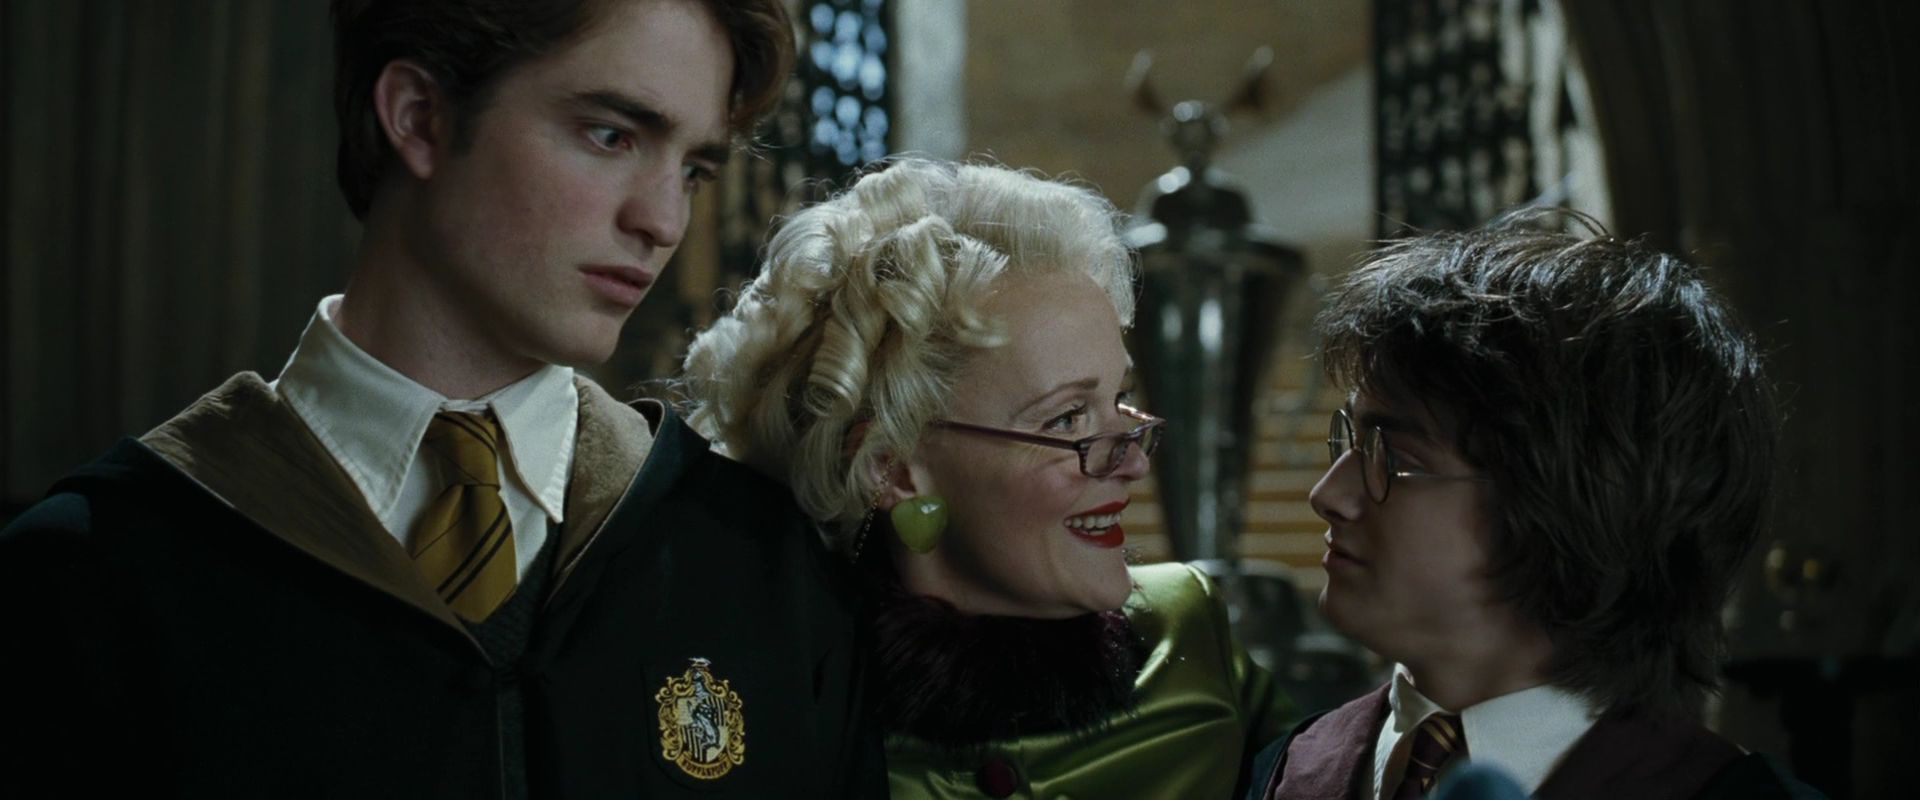 Jeu des images (version HP) - Page 6 Goblet-of-Fire-Cedric-Diggory-Screencaps-cedric-diggory-17334092-1920-800